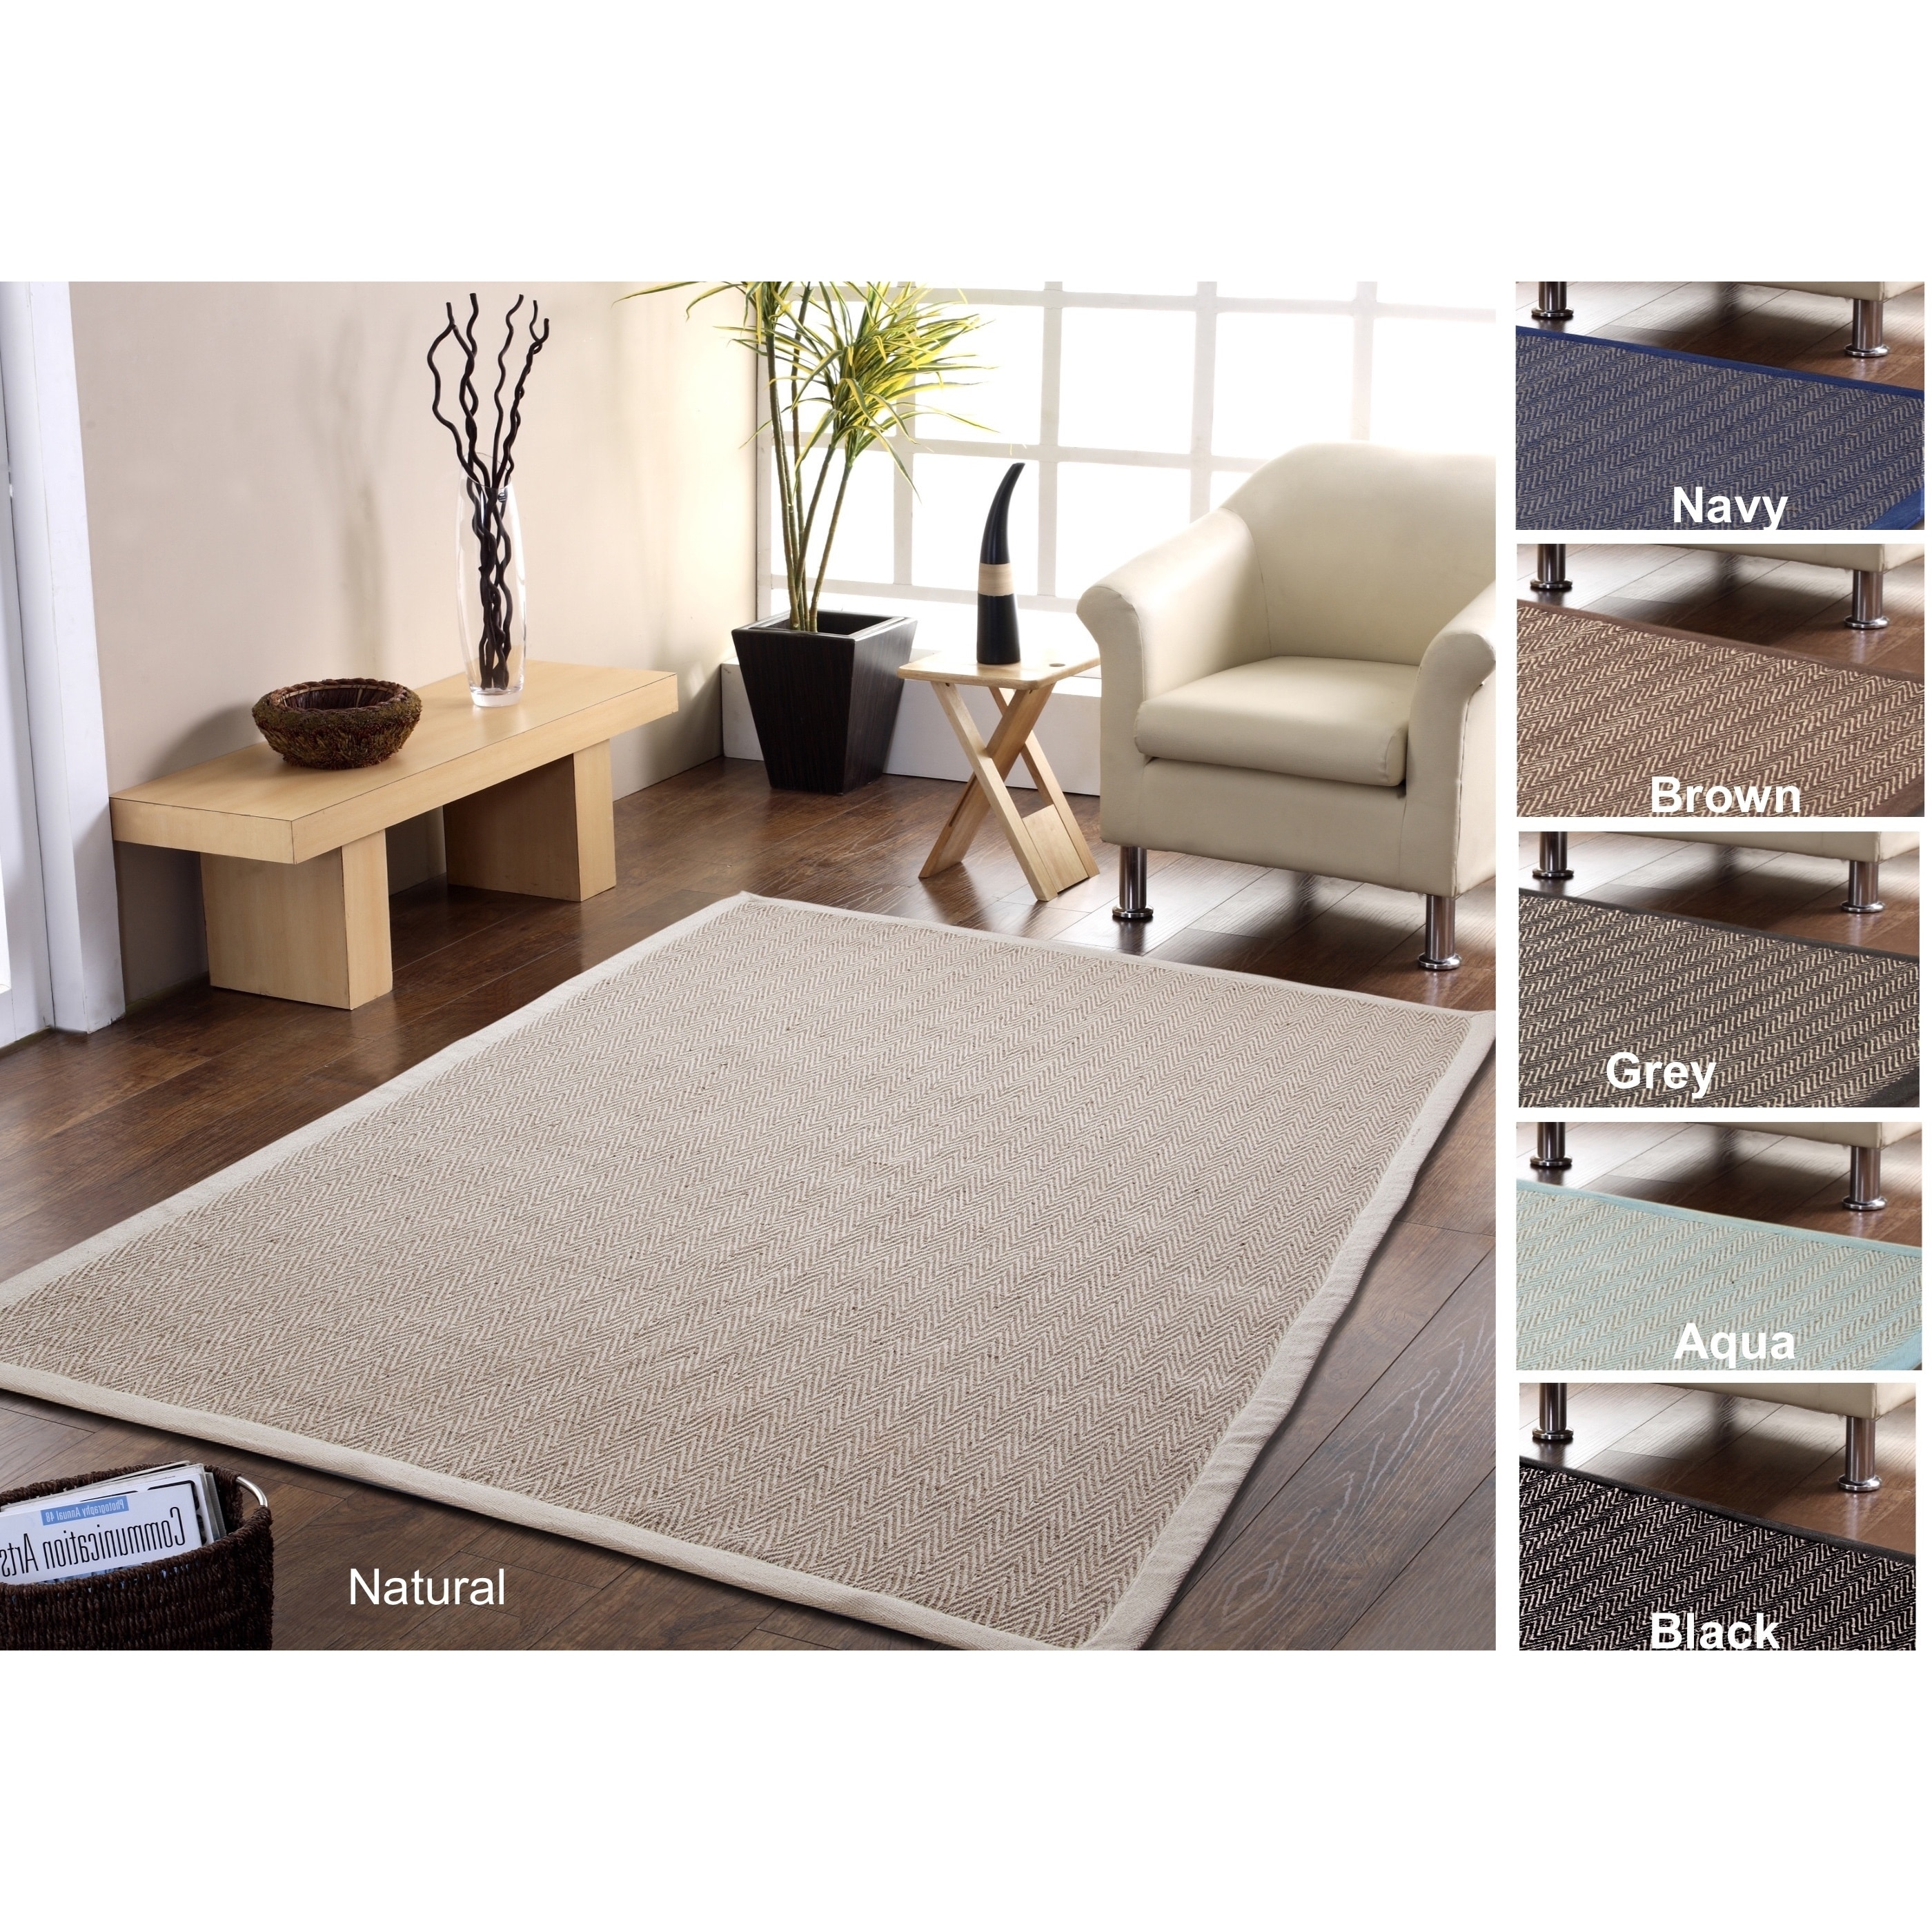 Handmade Natural Fiber Jute And Cotton Chevron Rug With Border 8 X 10 On Free Shipping Today Com 10544247